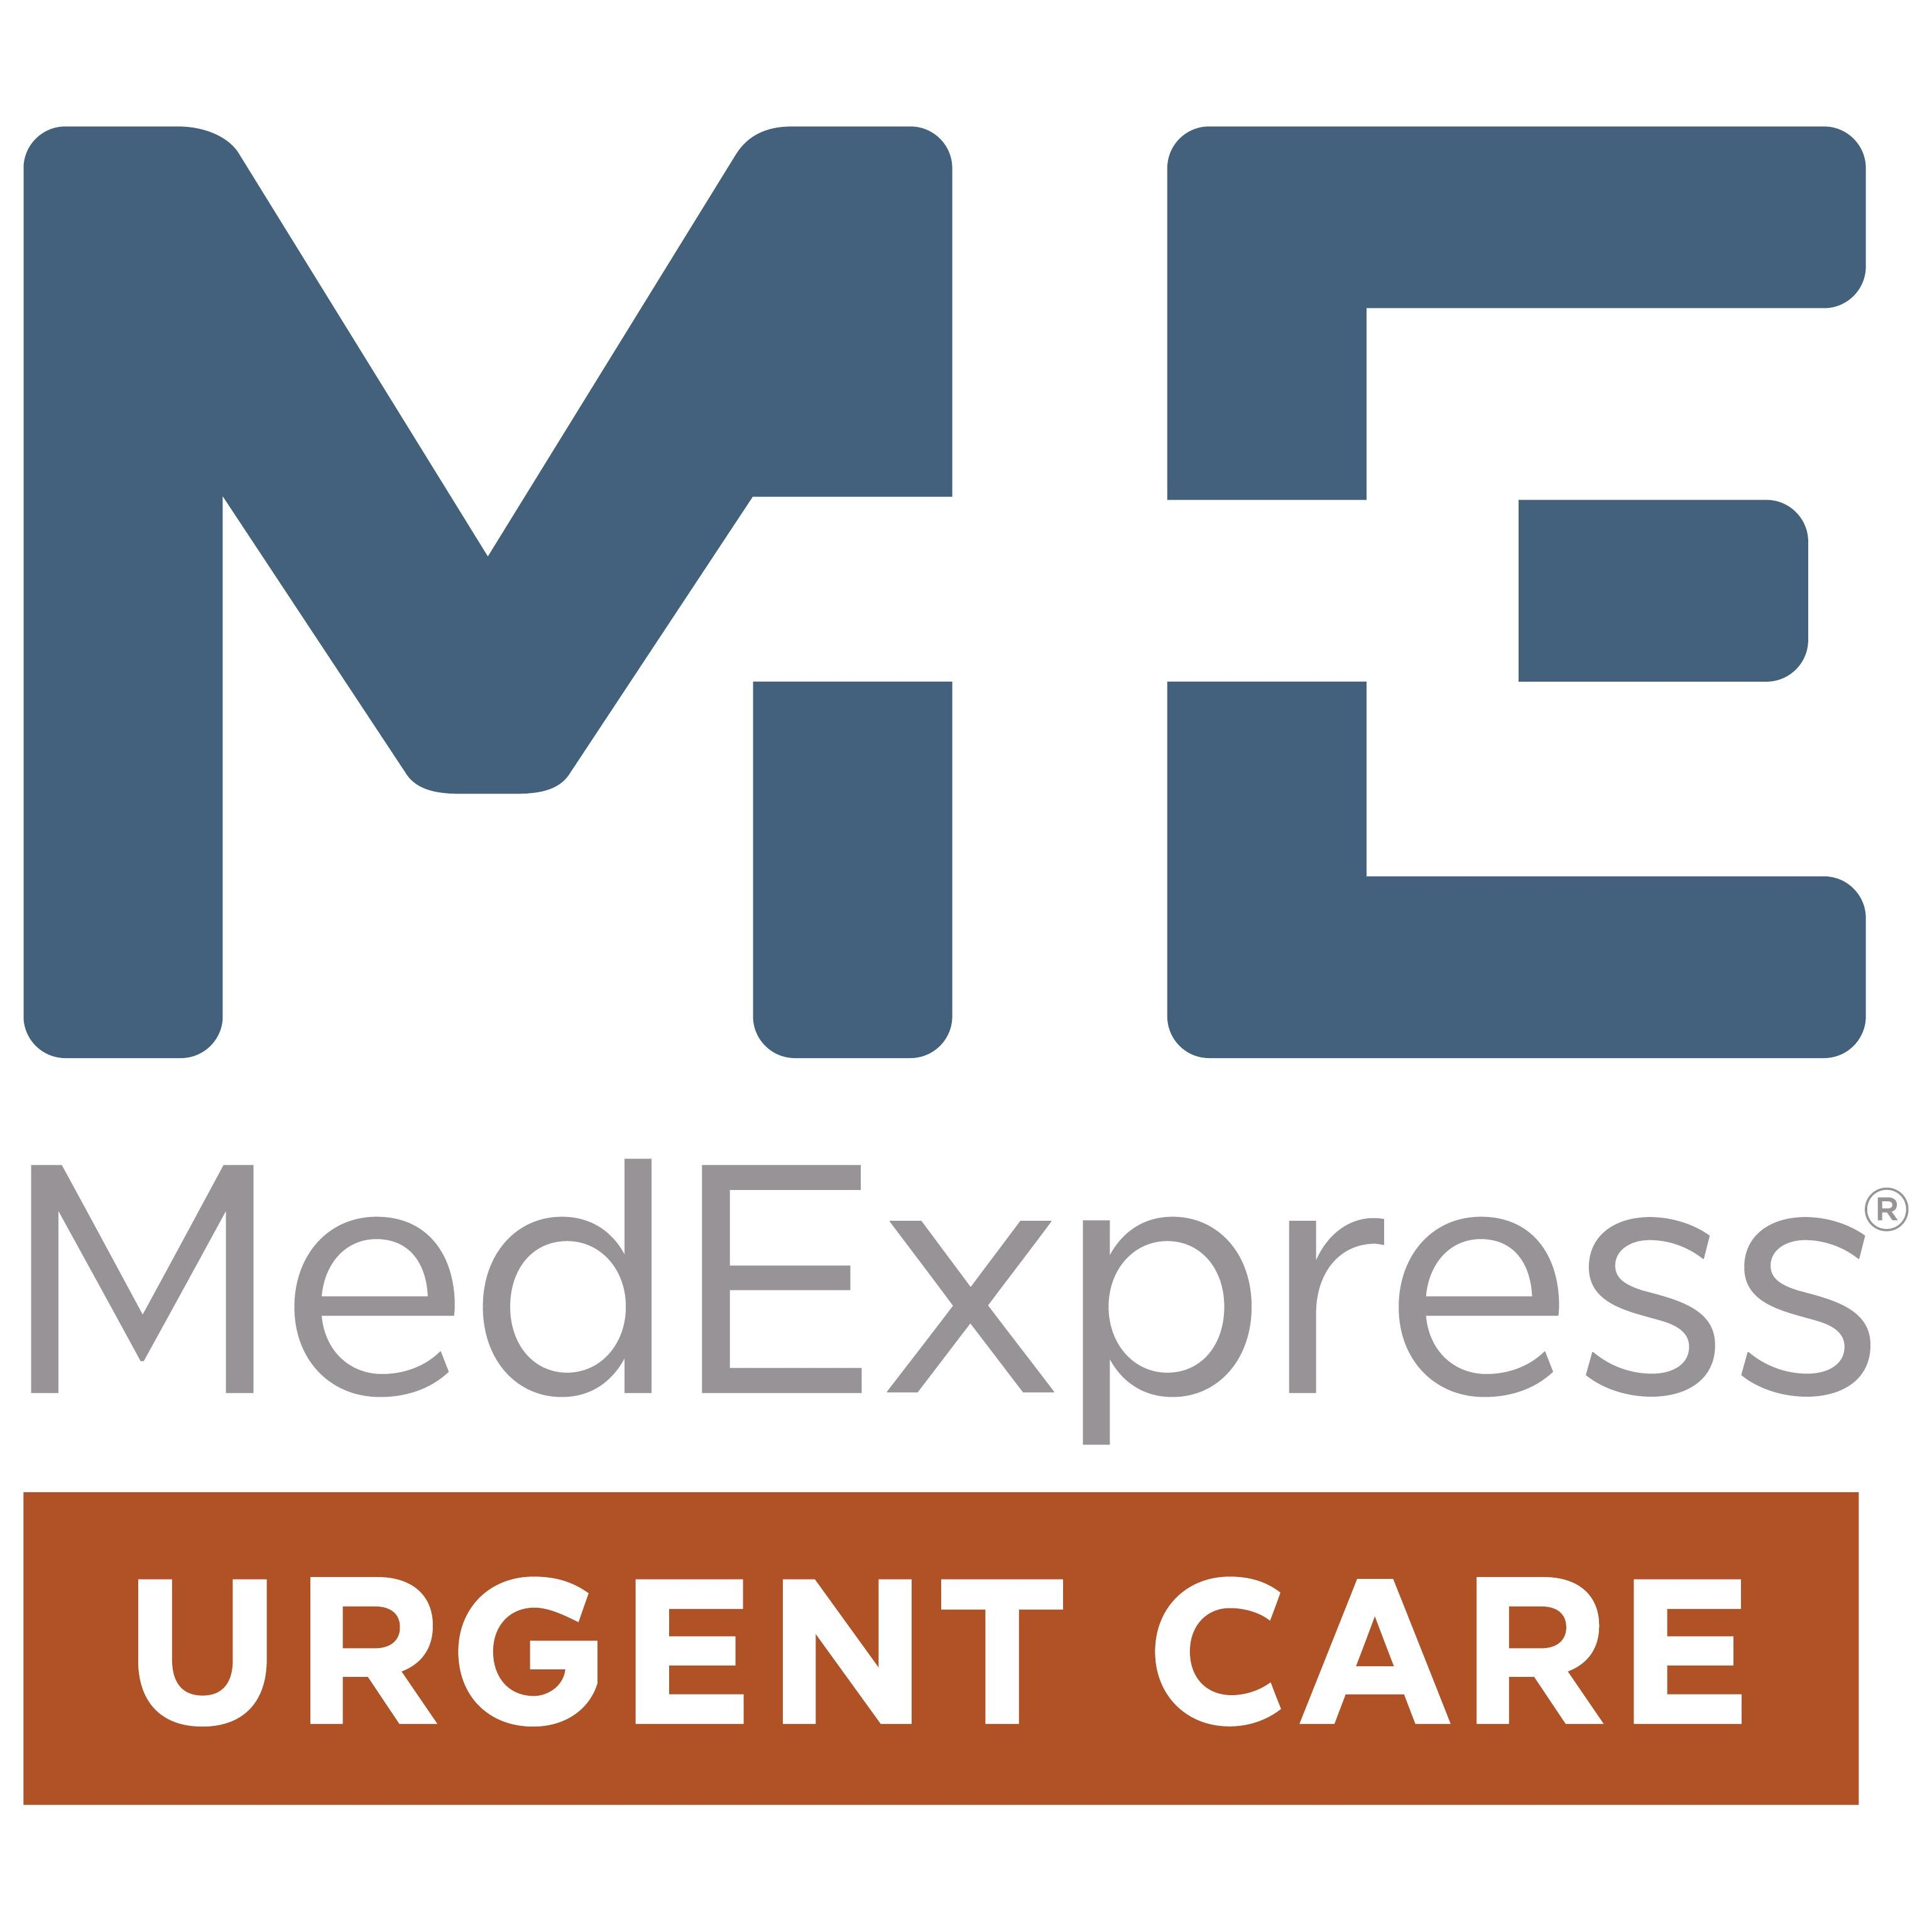 image of MedExpress Urgent Care